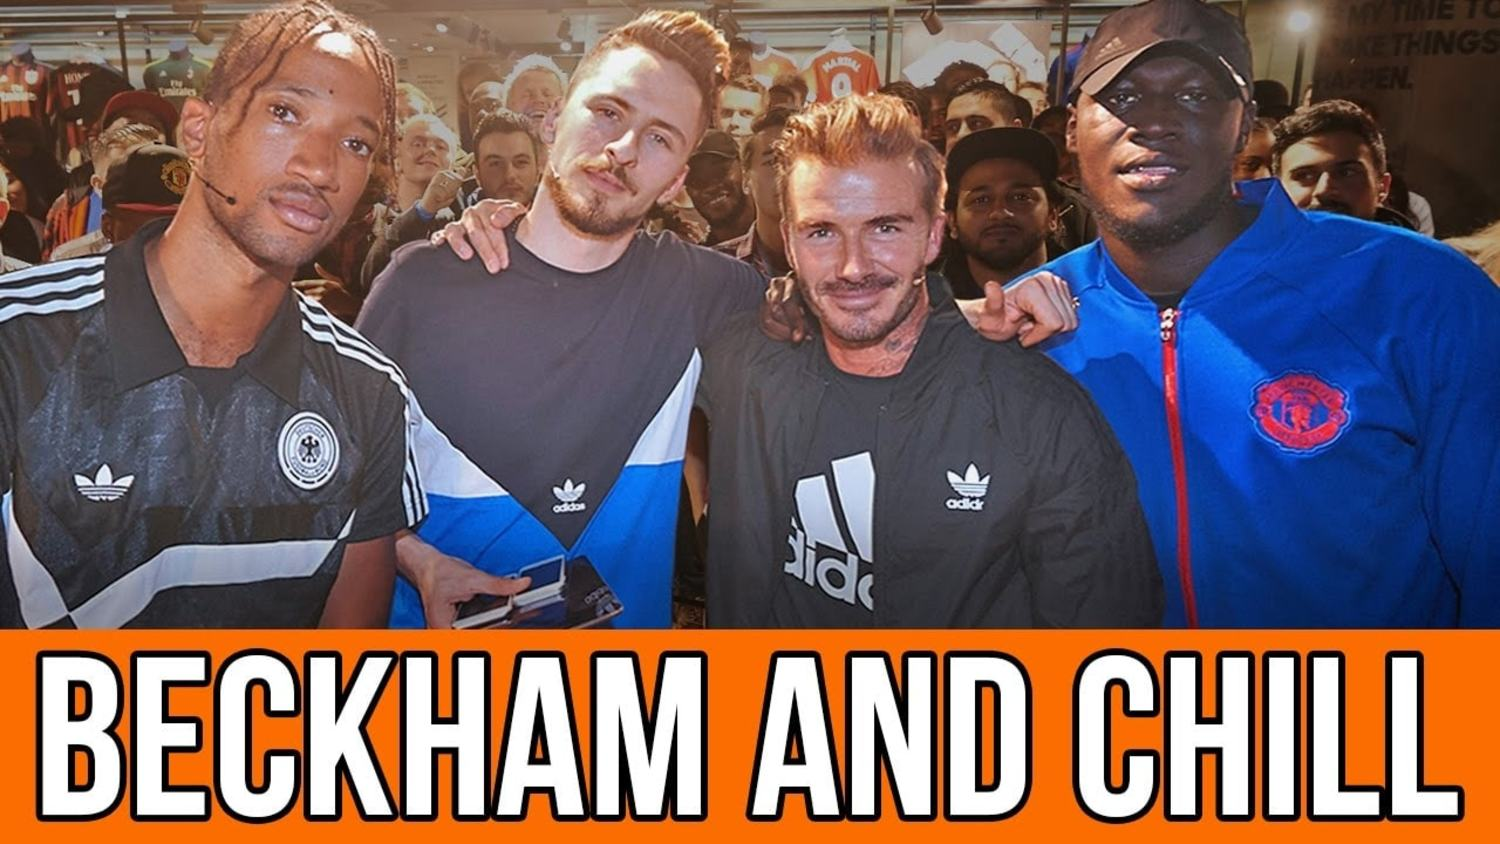 David Beckham & Stormzy Chill with Poet & Vuj: Adidas x Man United Kit Launch